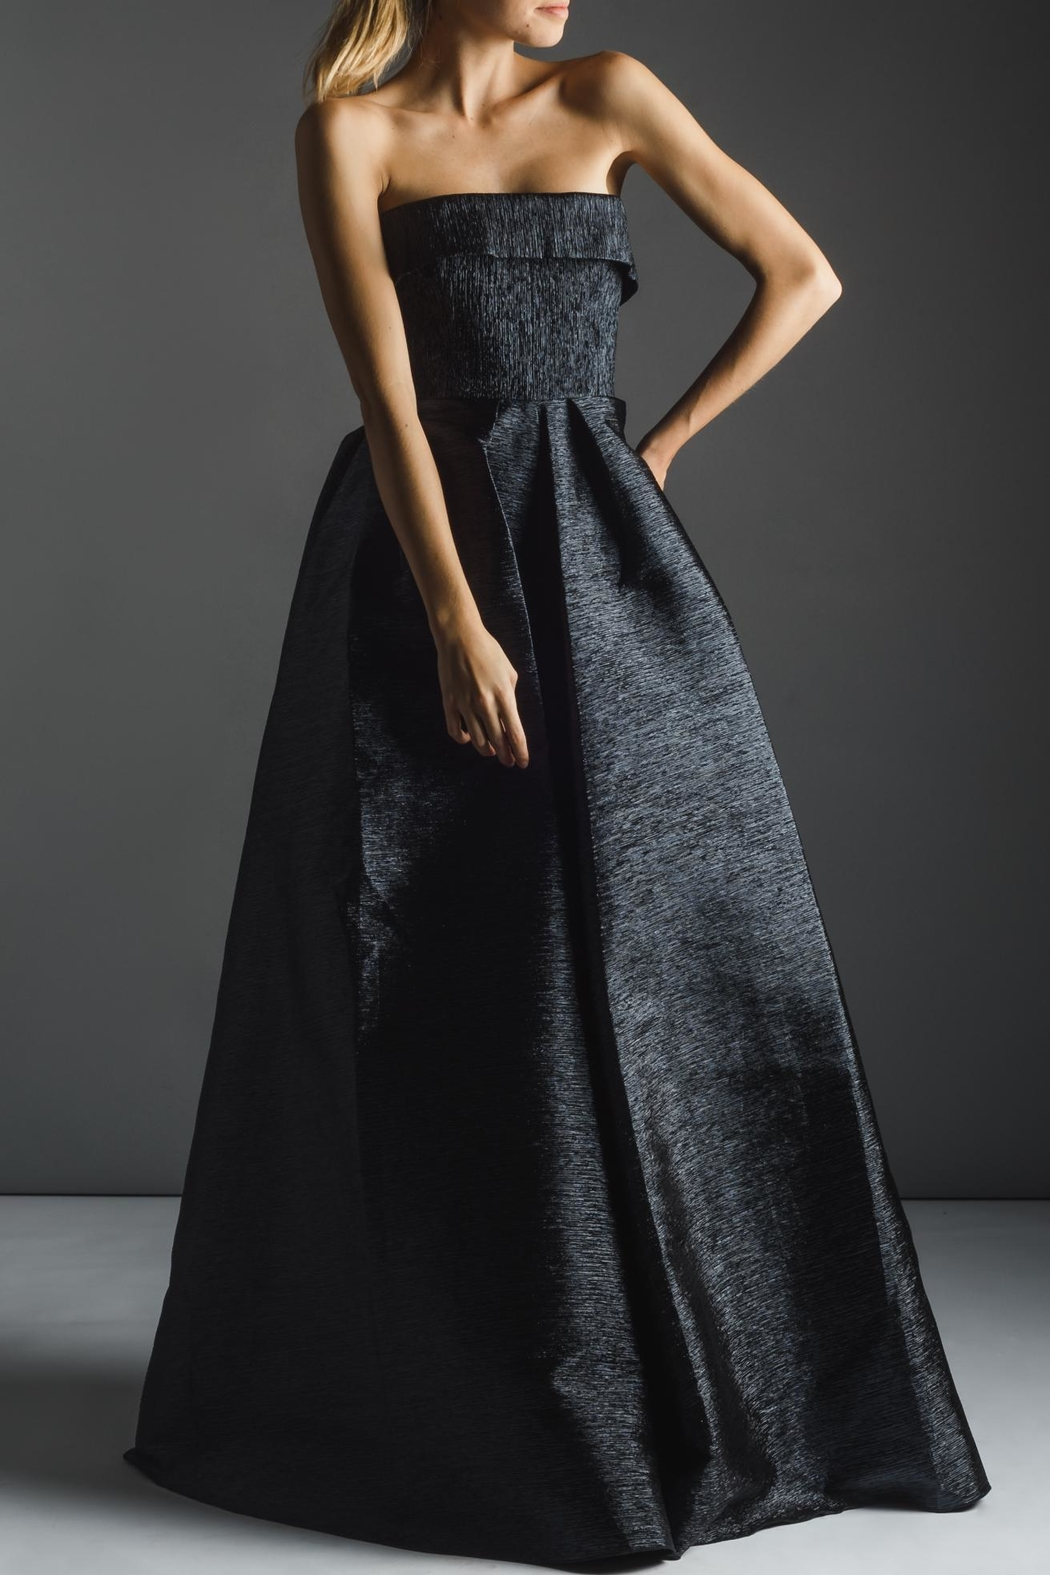 Alex Perry Australian Metallic Gown from Monterrey by Mona Mour ...